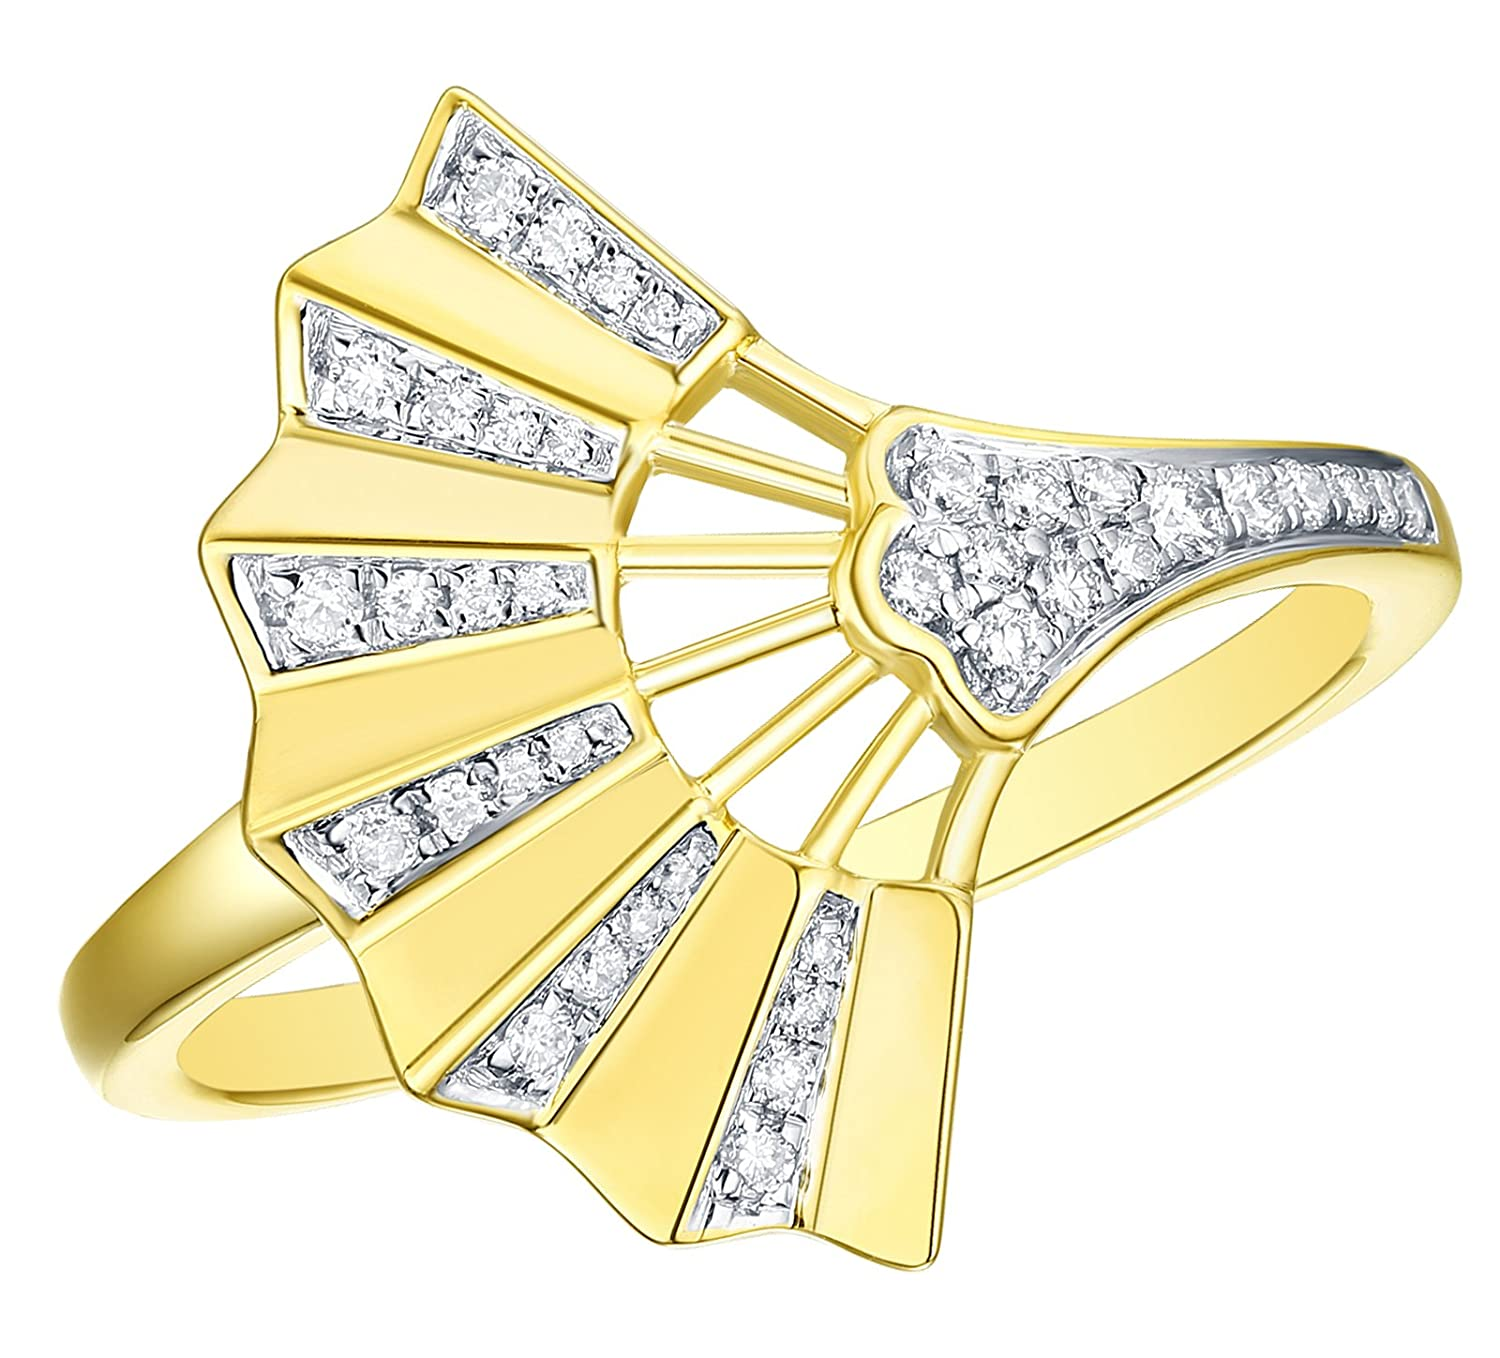 10k Gold Prism Jewel 0.15Ct Round G-H//I1 Natural Diamond Hand Fan Style Ring